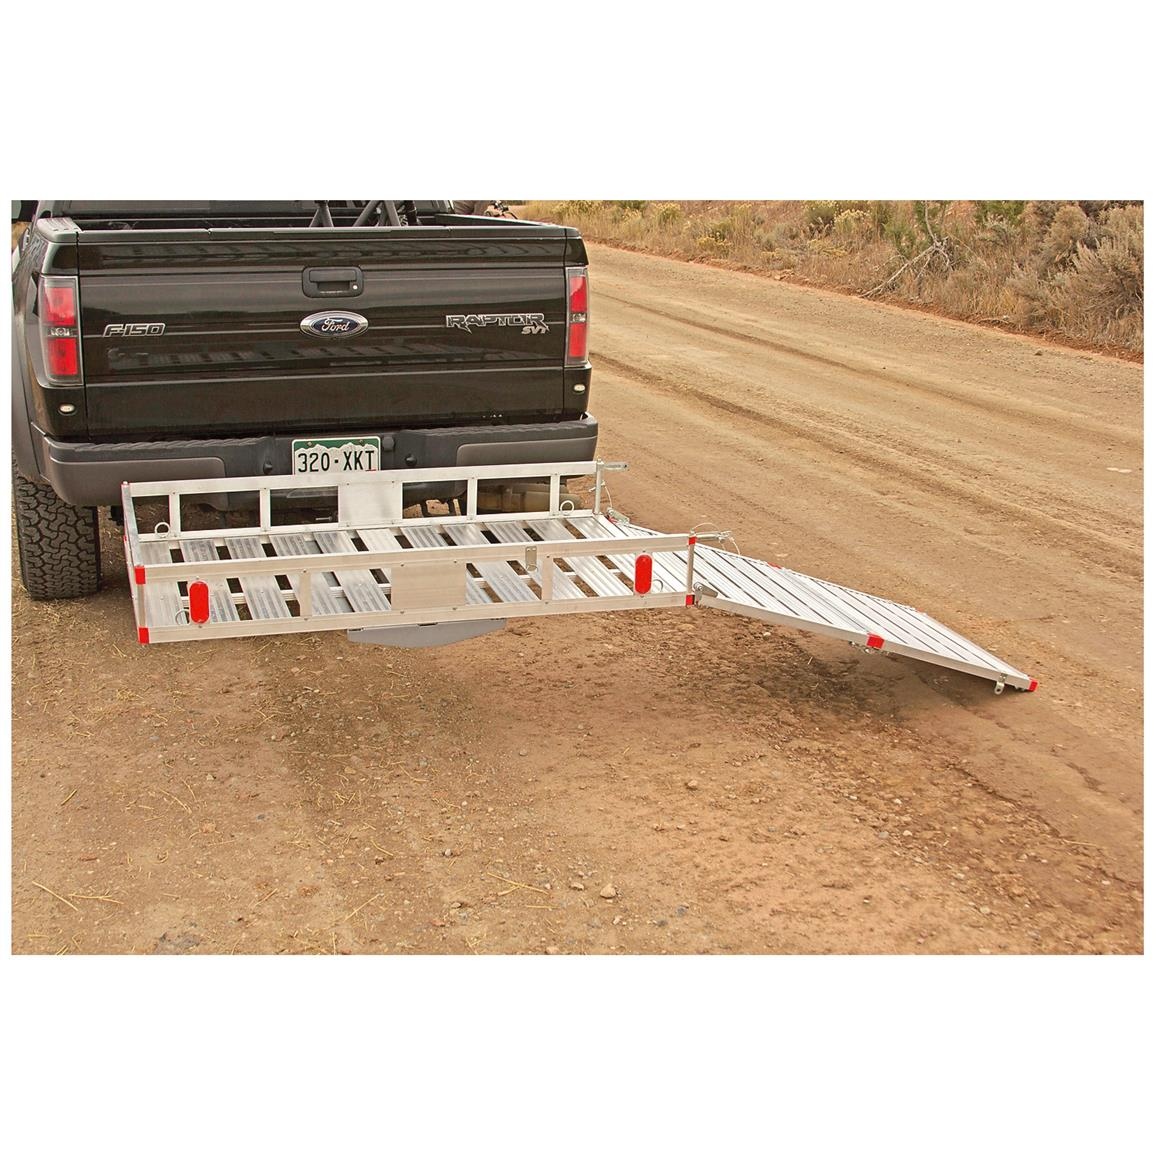 Lightweight, rugged aluminum carrier and ramp resists corrosion and rust for years of use